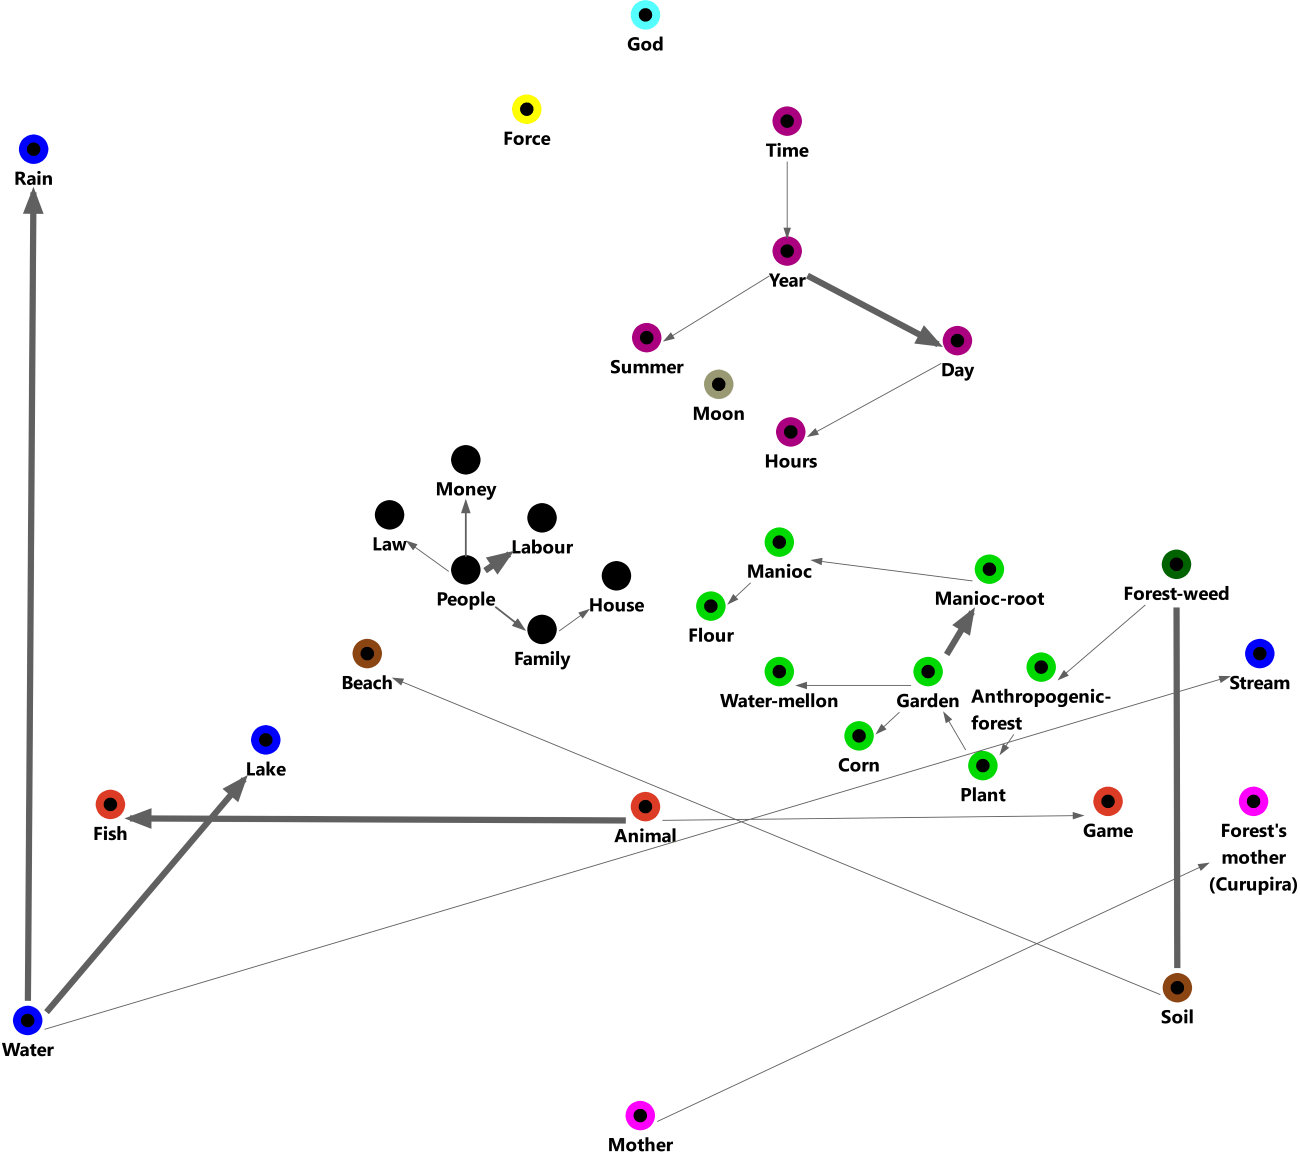 Free model of code interconnectedness in lived spaces